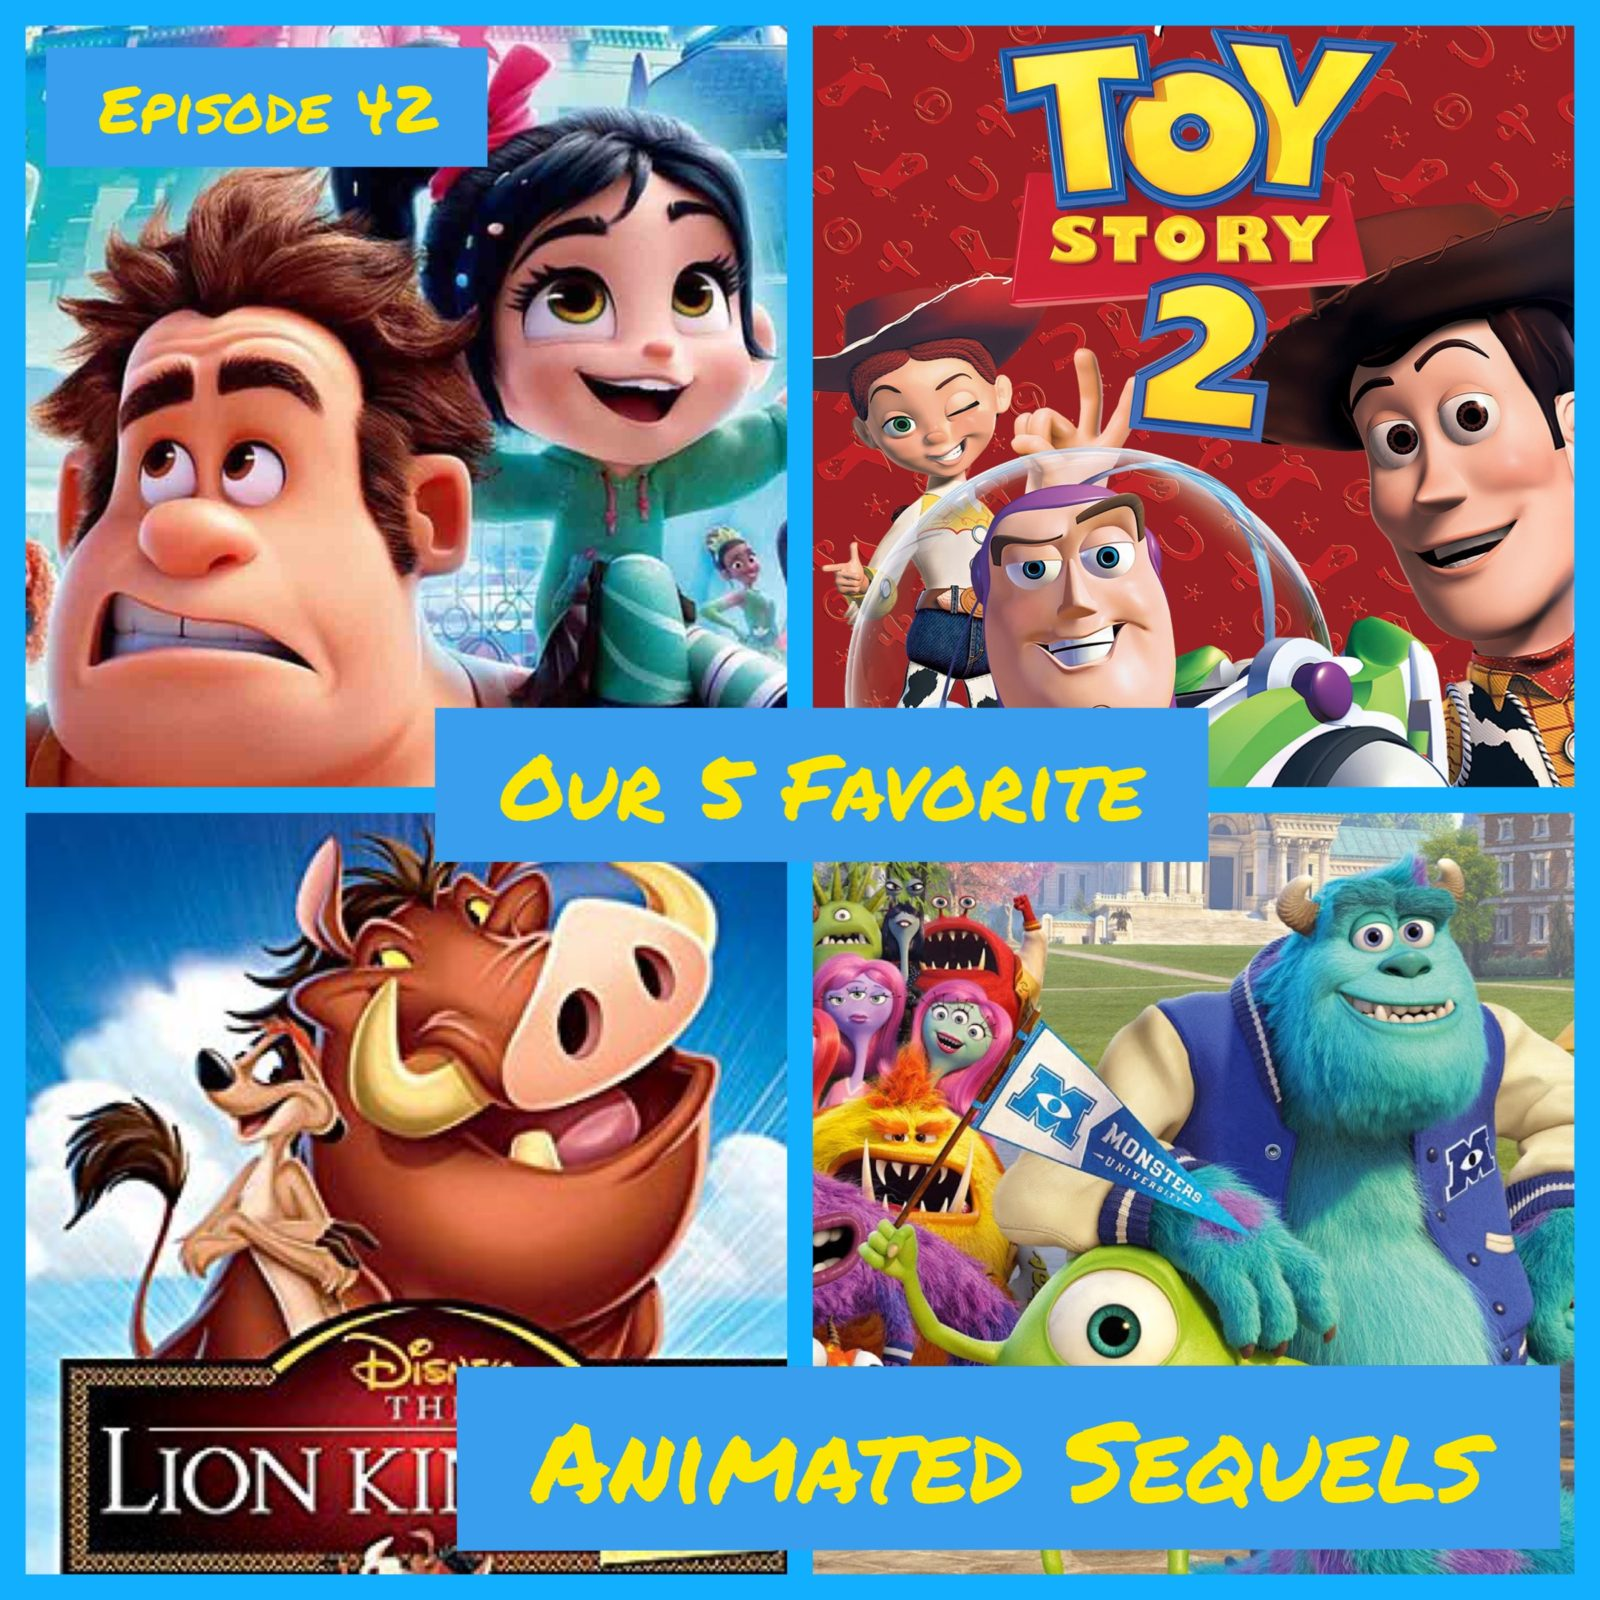 5 Favorite Animated Sequels